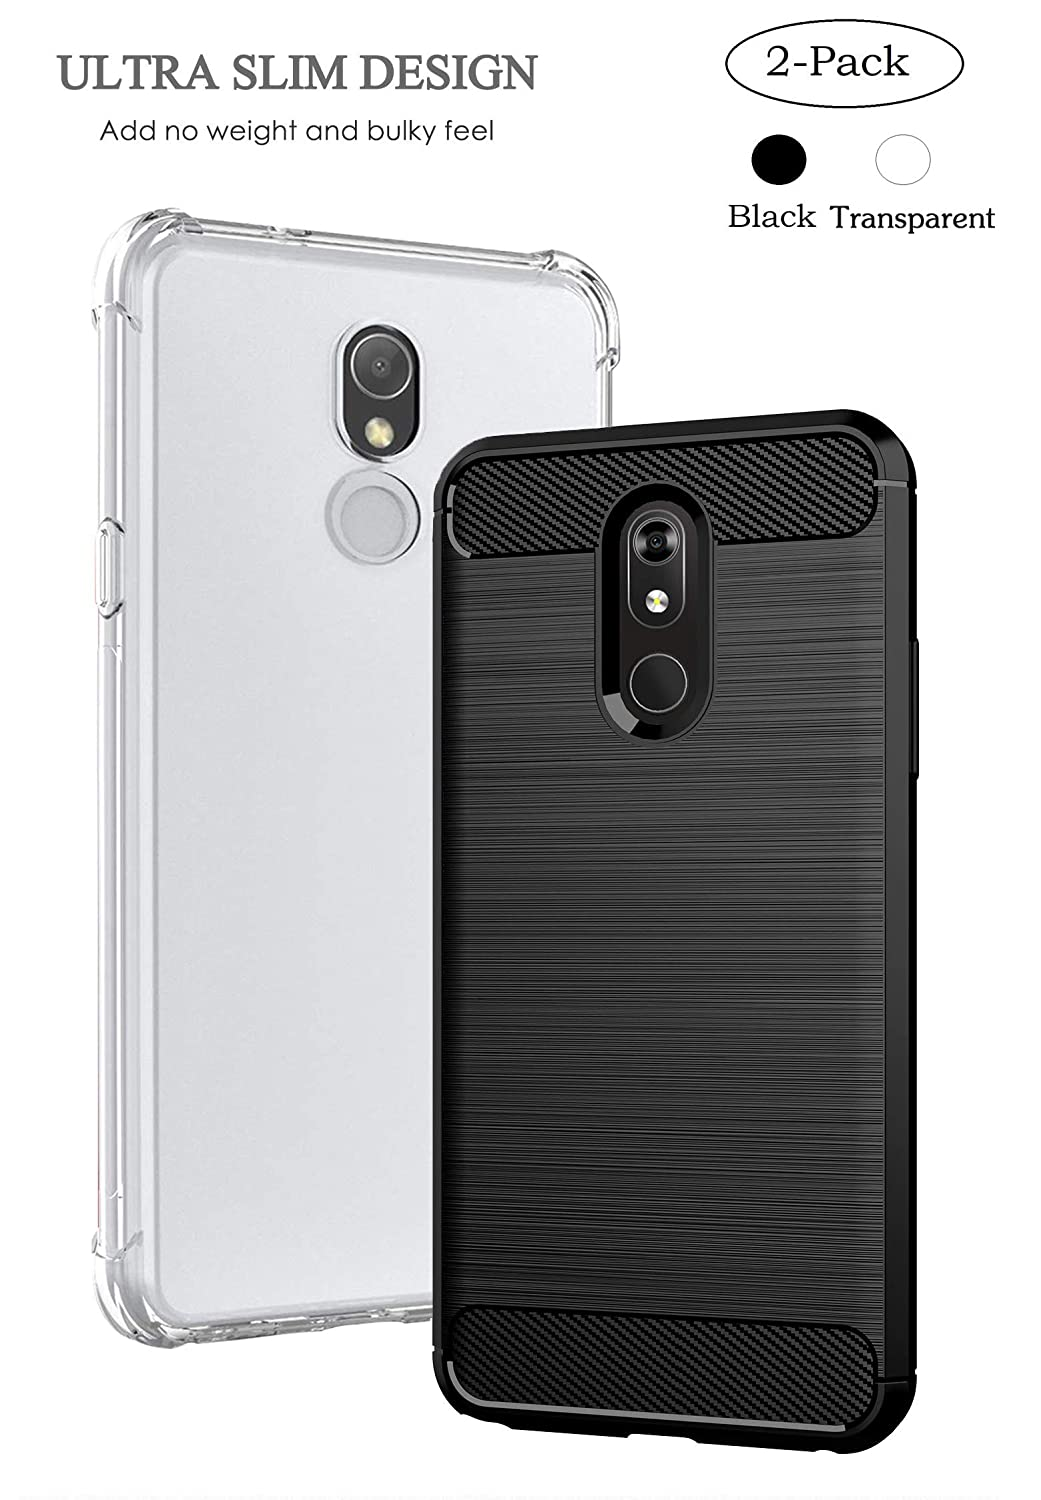 Sfmn 2-Pack Case for LG Stylo 5 Case Carbon Fiber Brushed Texture Soft TPU Full-Body Protective Cover Phone Case for LG Stylo 5 Phone Case (Black+Clear)